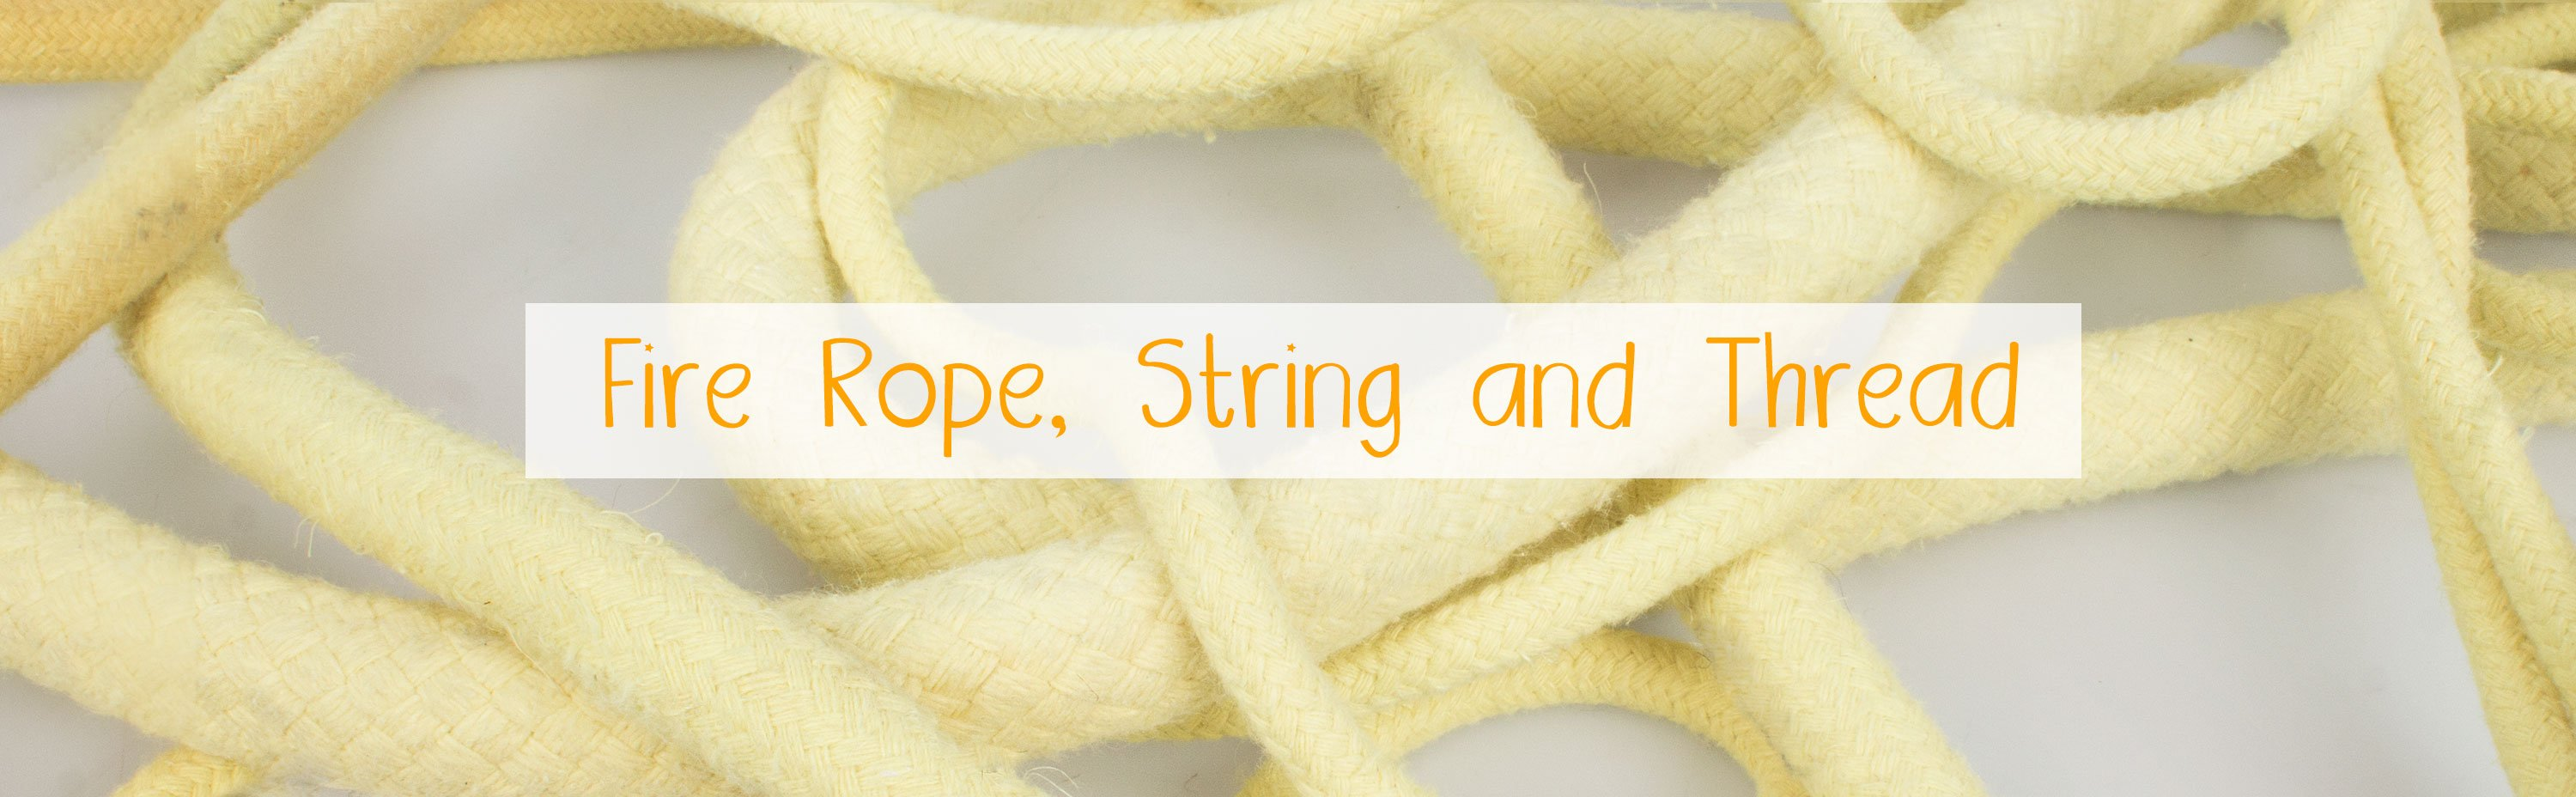 Fire Rope, String and Thread